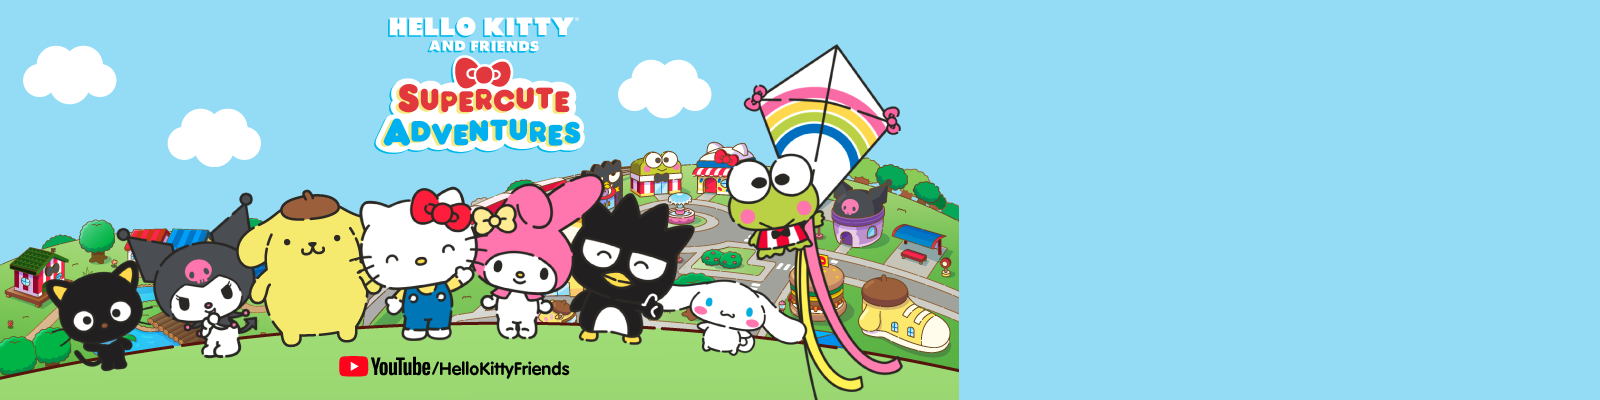 Season 2 of Hello Kitty and Friends Super Cute Adventures  Premieres April Fourteenth!